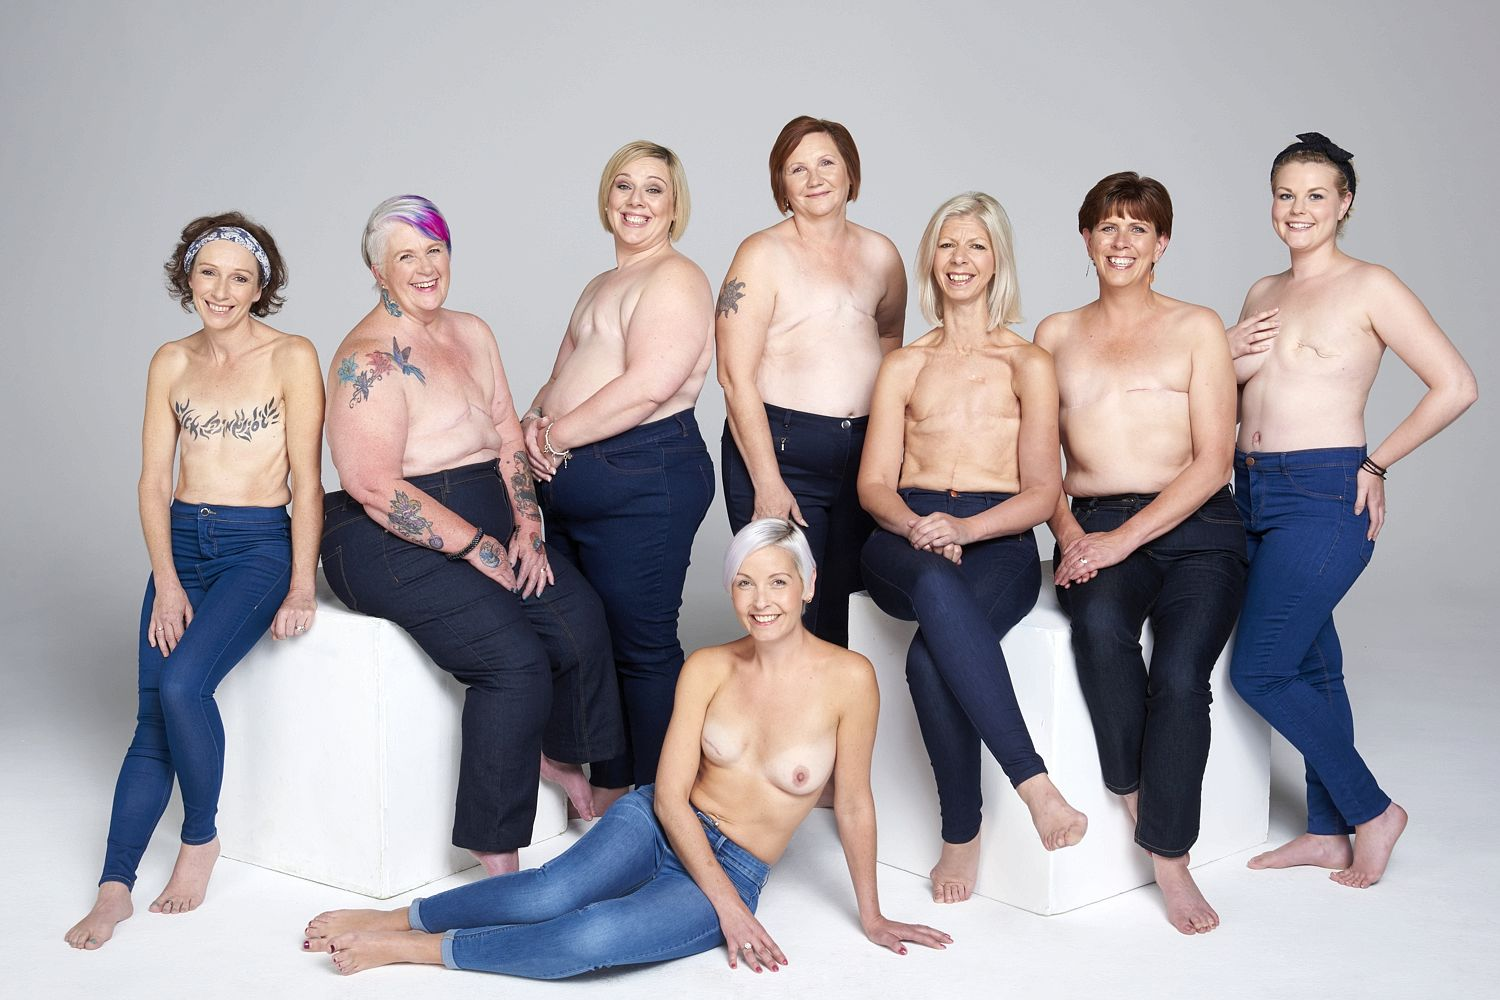 Breast show their who woman